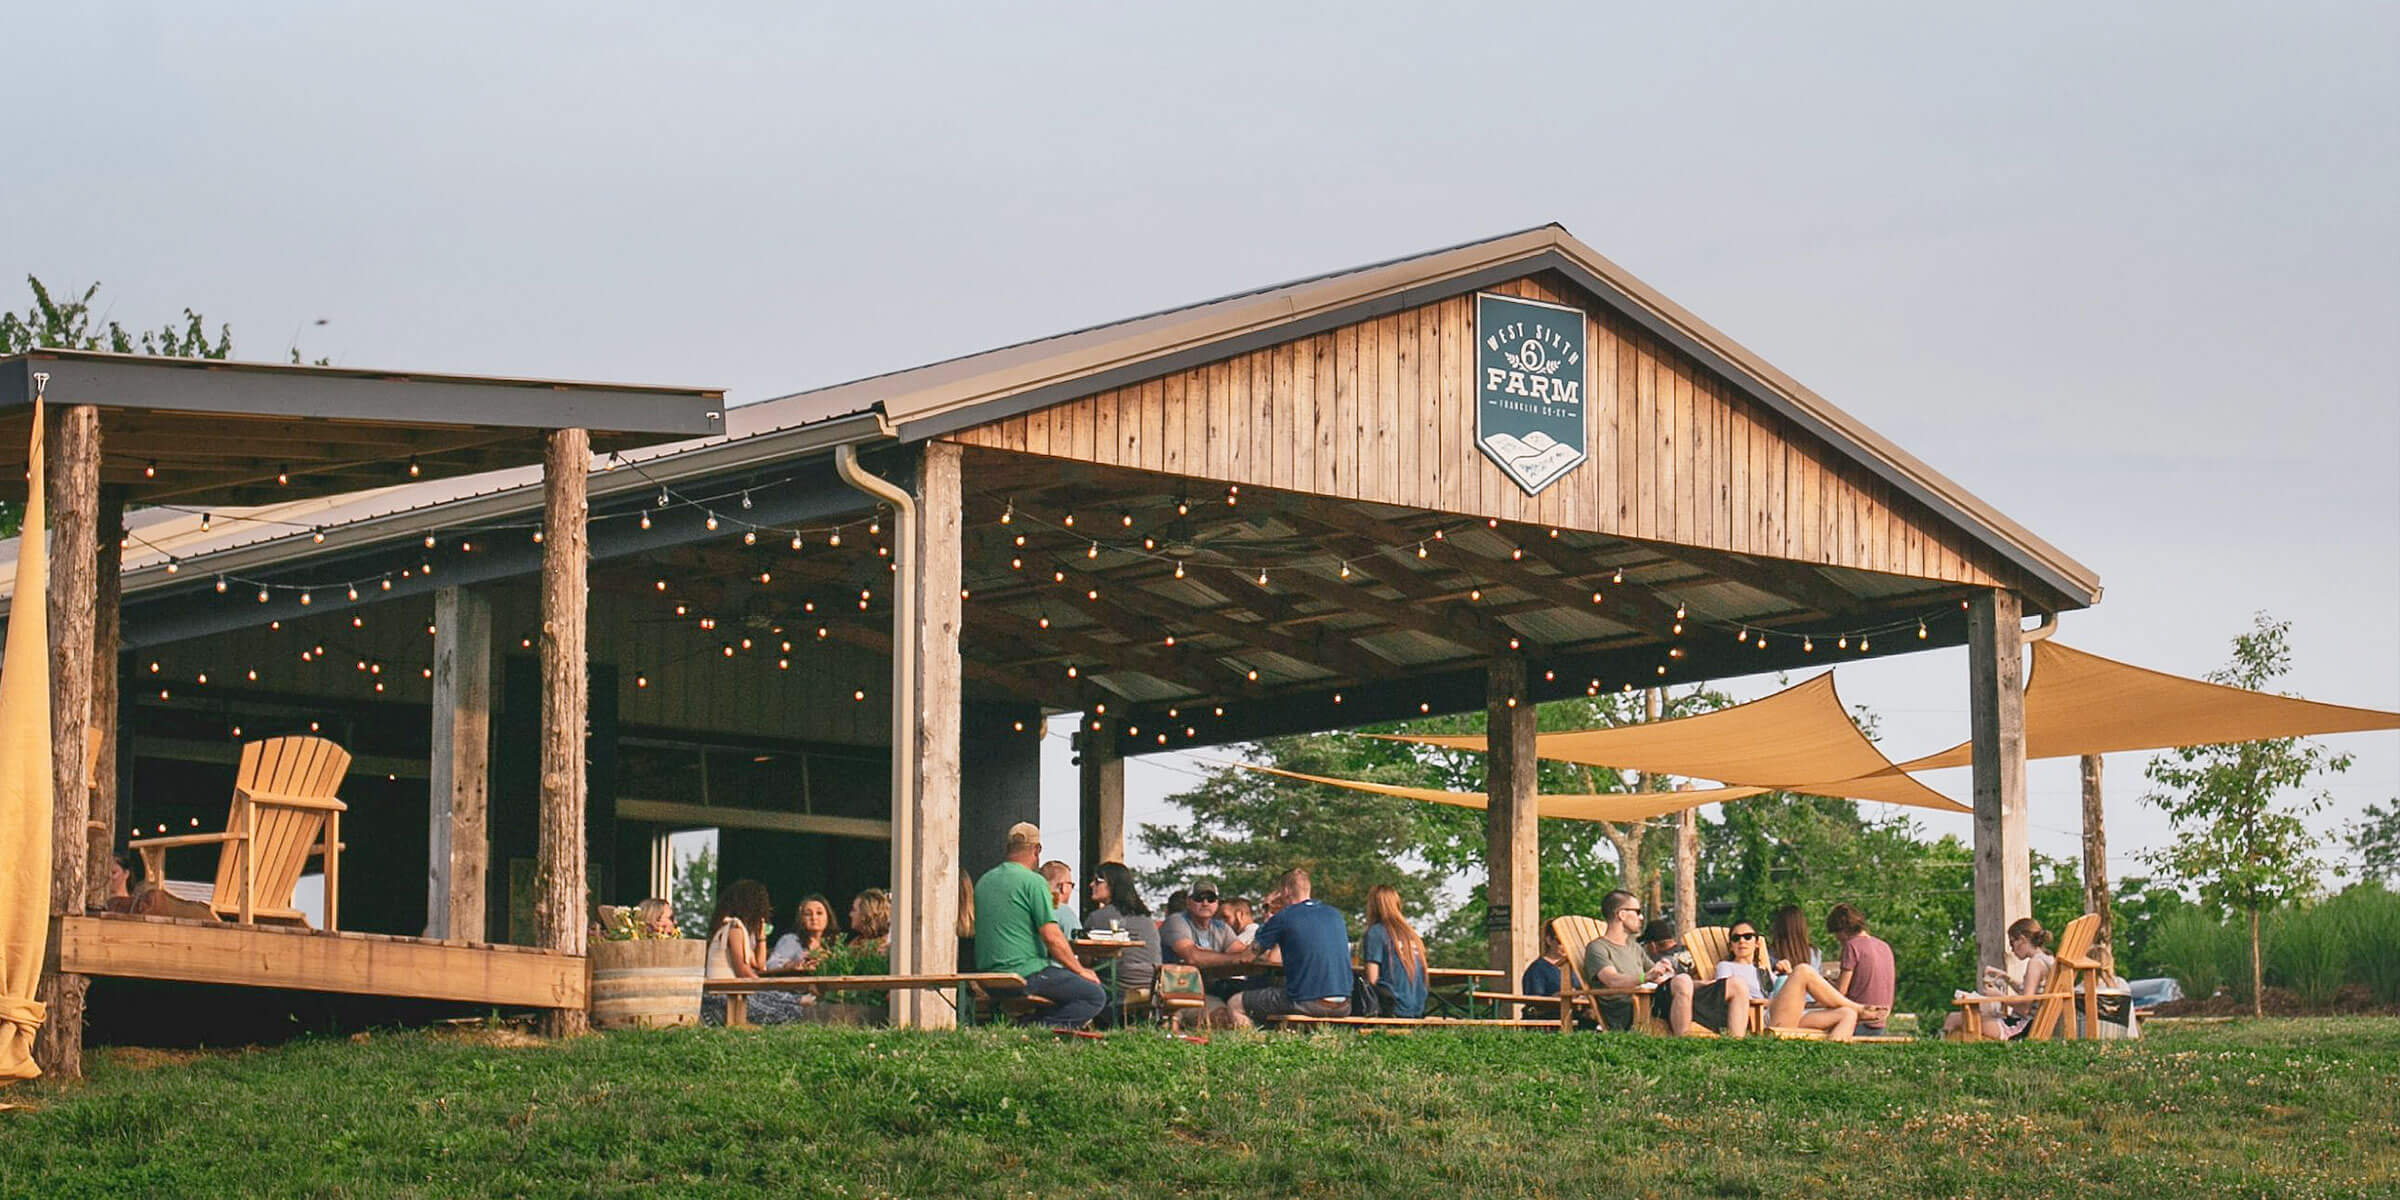 Outside the pavilion at the West Sixth Brewing Company's West Sixth Farm location in Frankfort, Kentucky